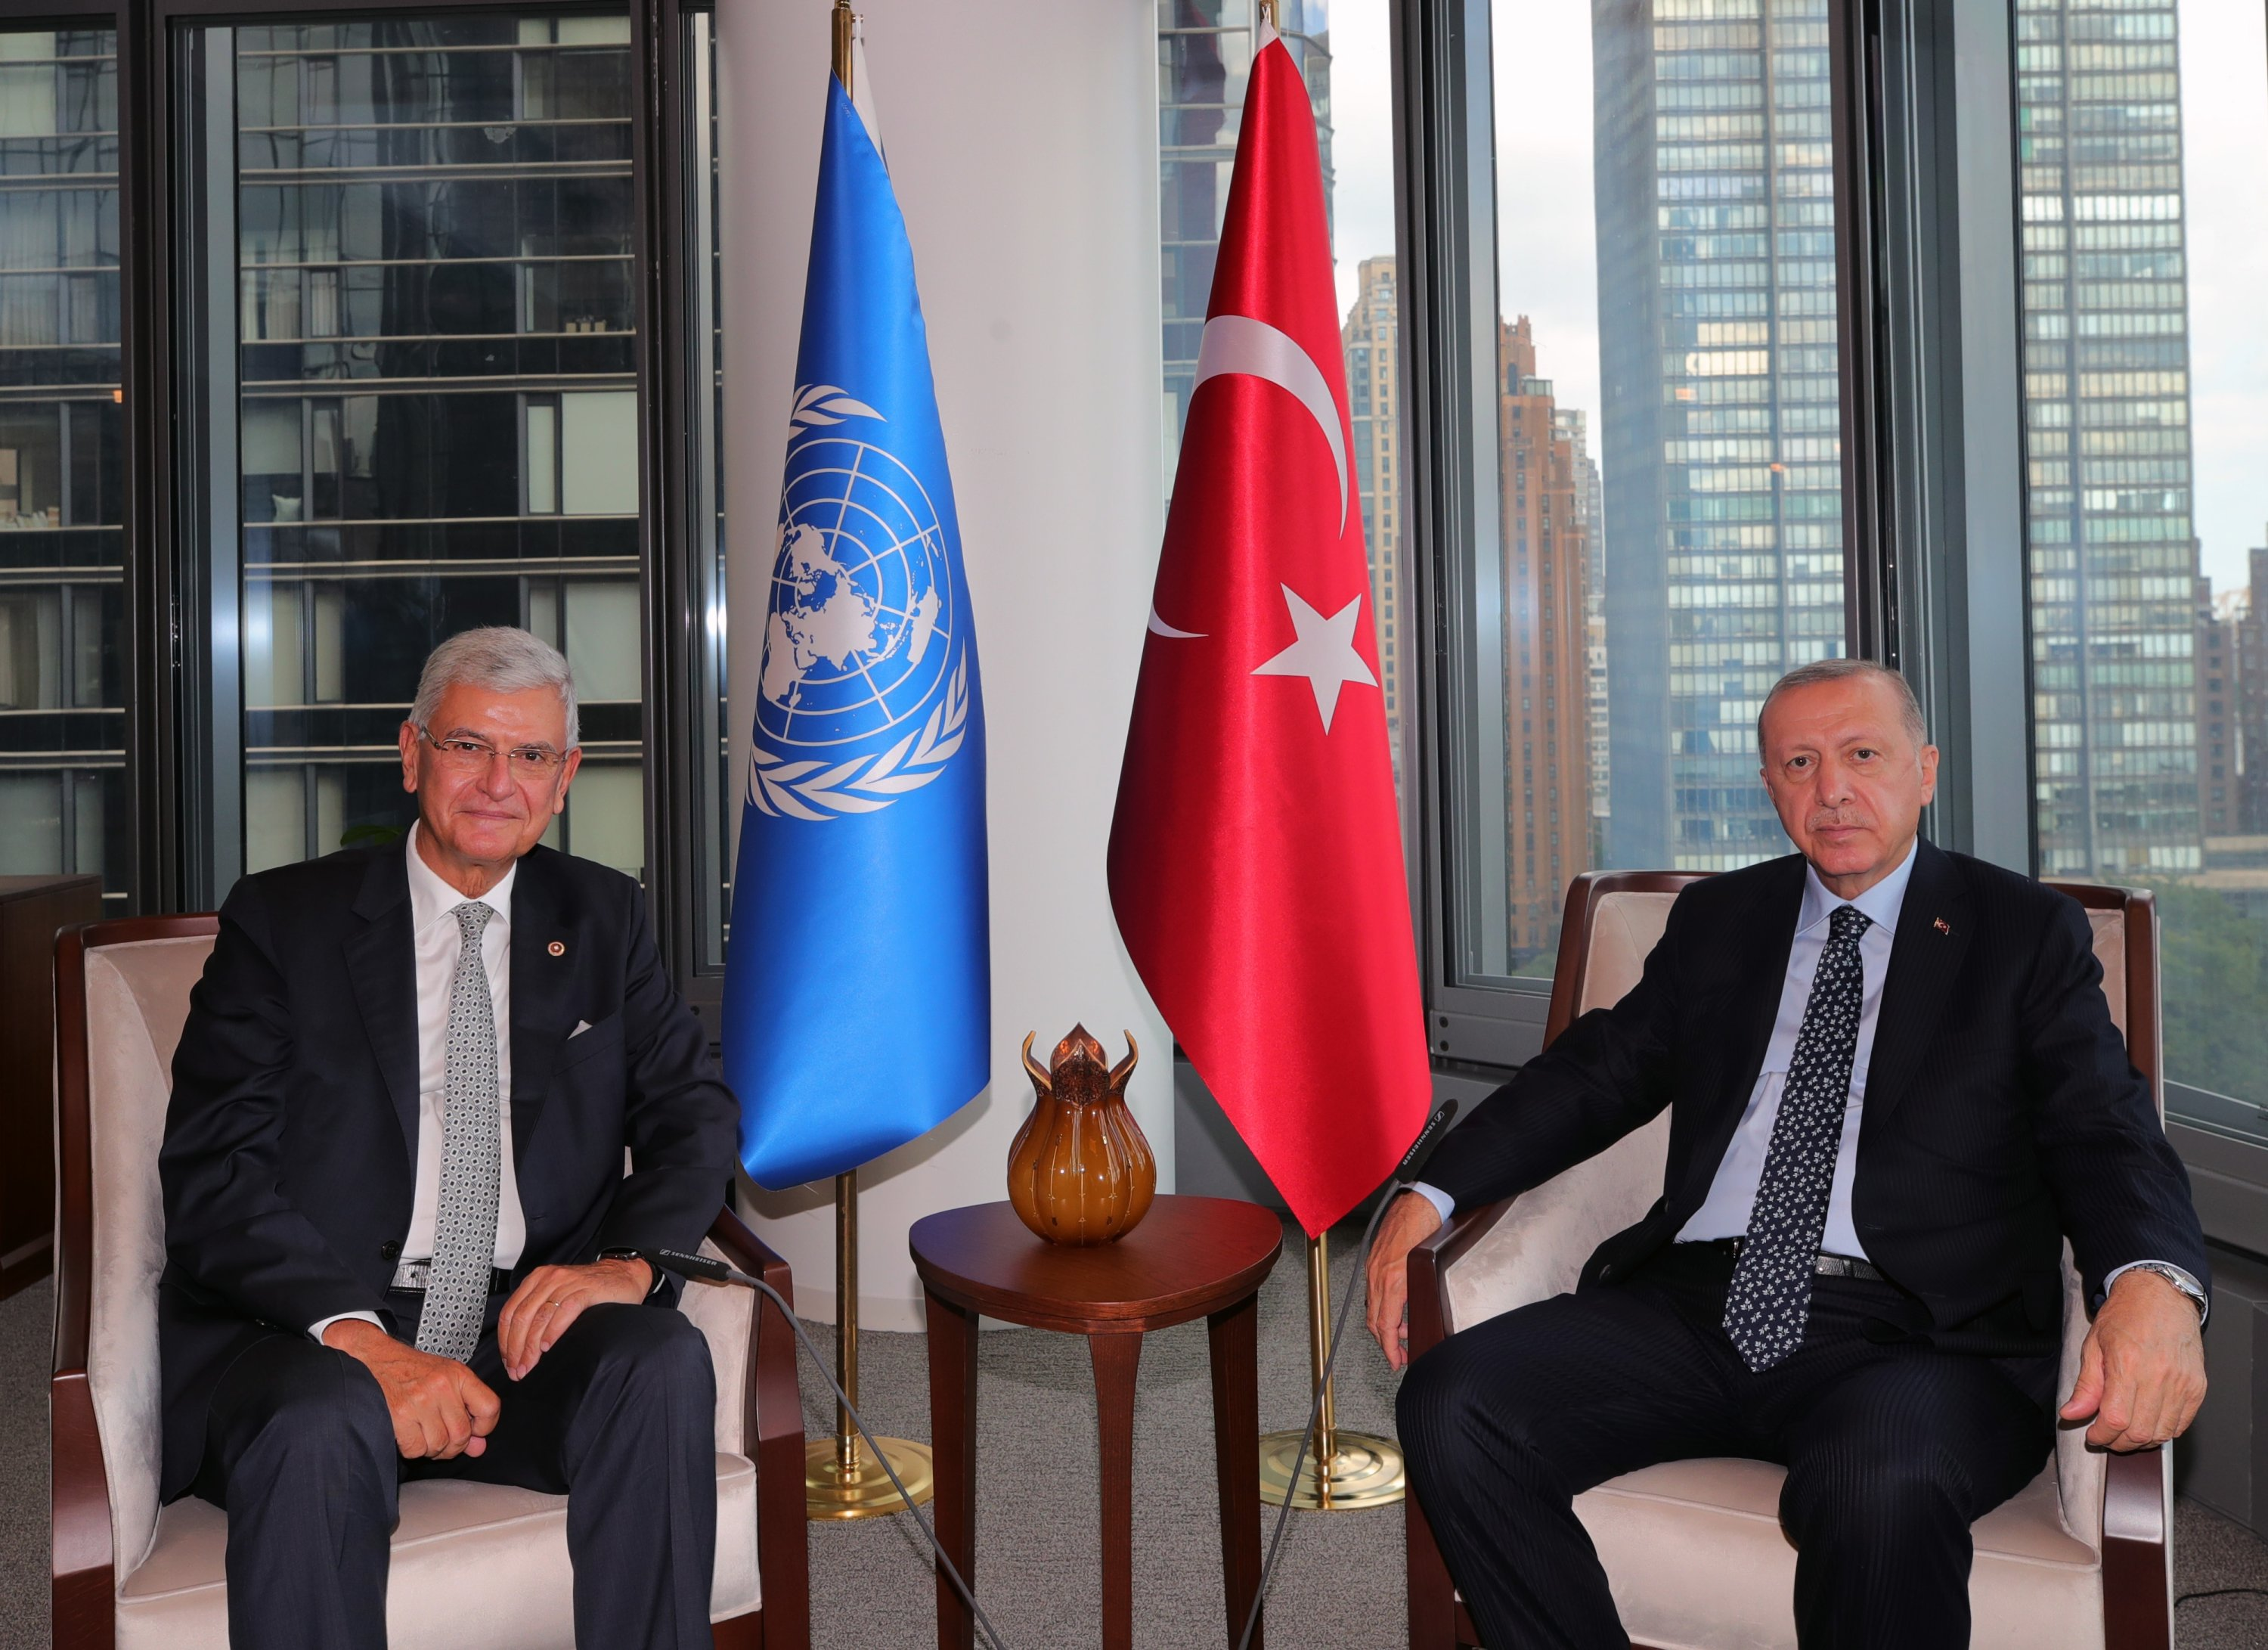 President Recep Tayyip Erdoğan received Volkan Bozkır (L), who completed his term as the 75th President of the United Nations General Assembly in New York, U.S., Sept. 20, 2021. (AA Photo)